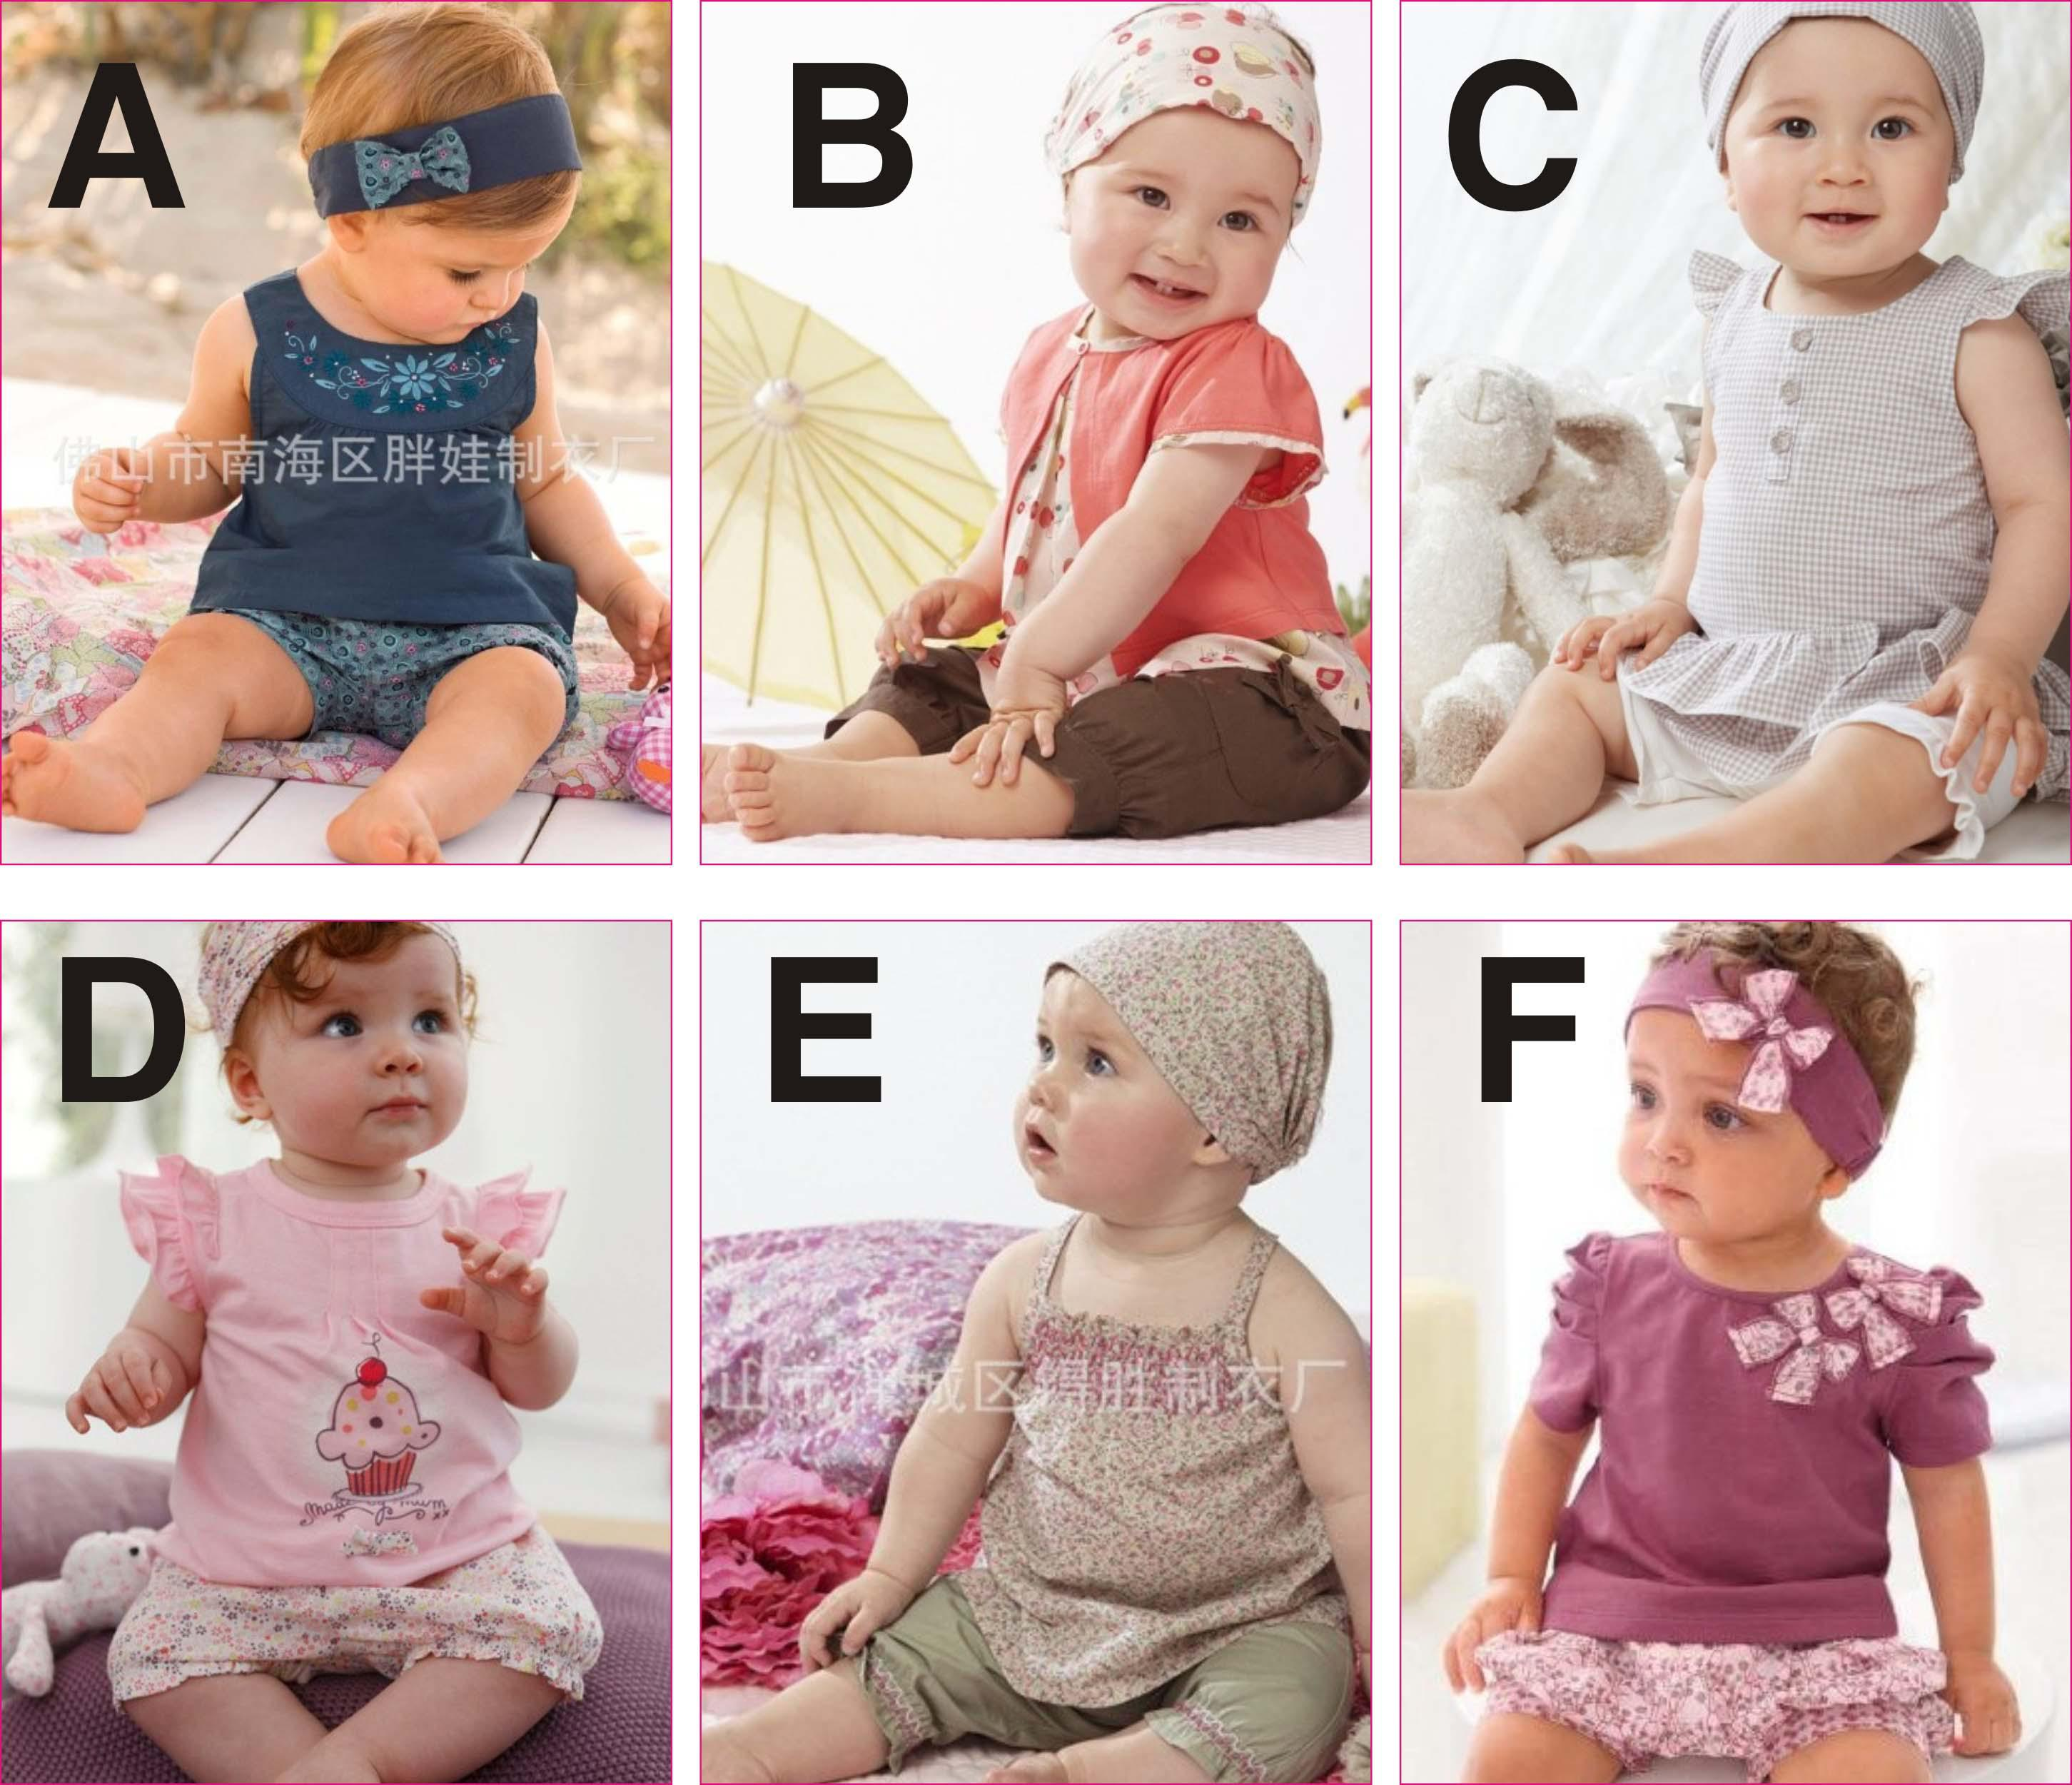 Baby Cheap Clothes: Buy Baby Clothes